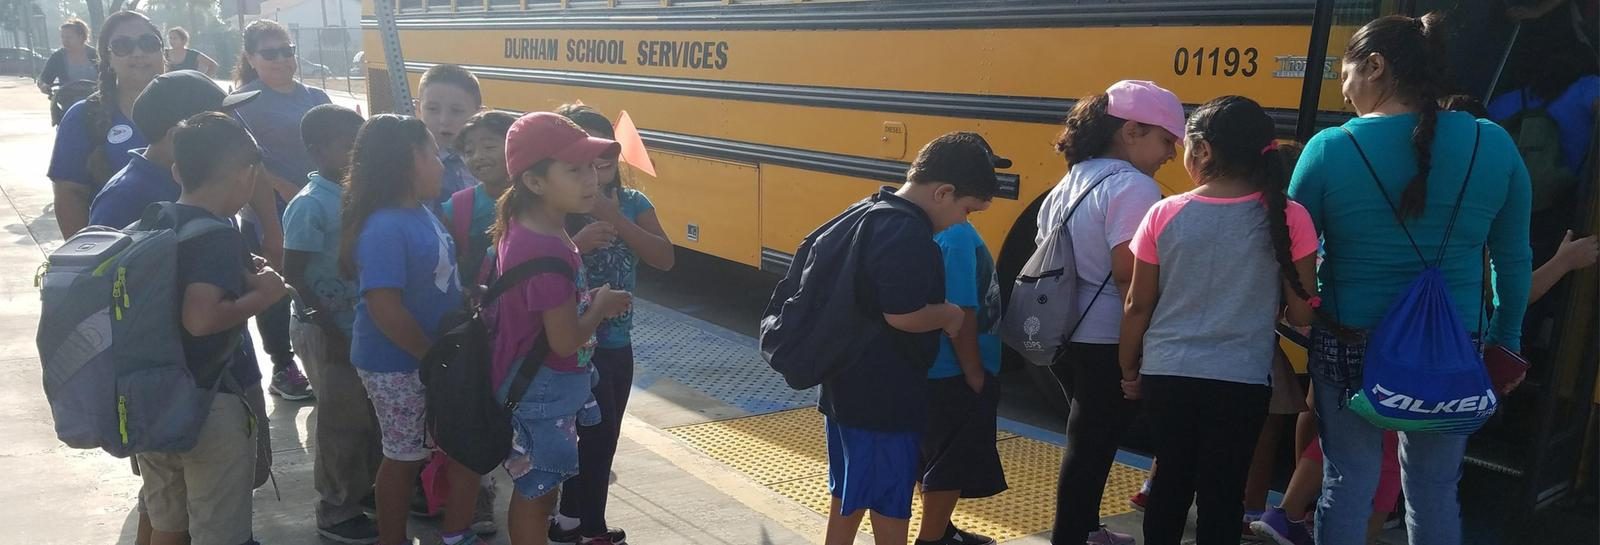 Lopez students getting on bus